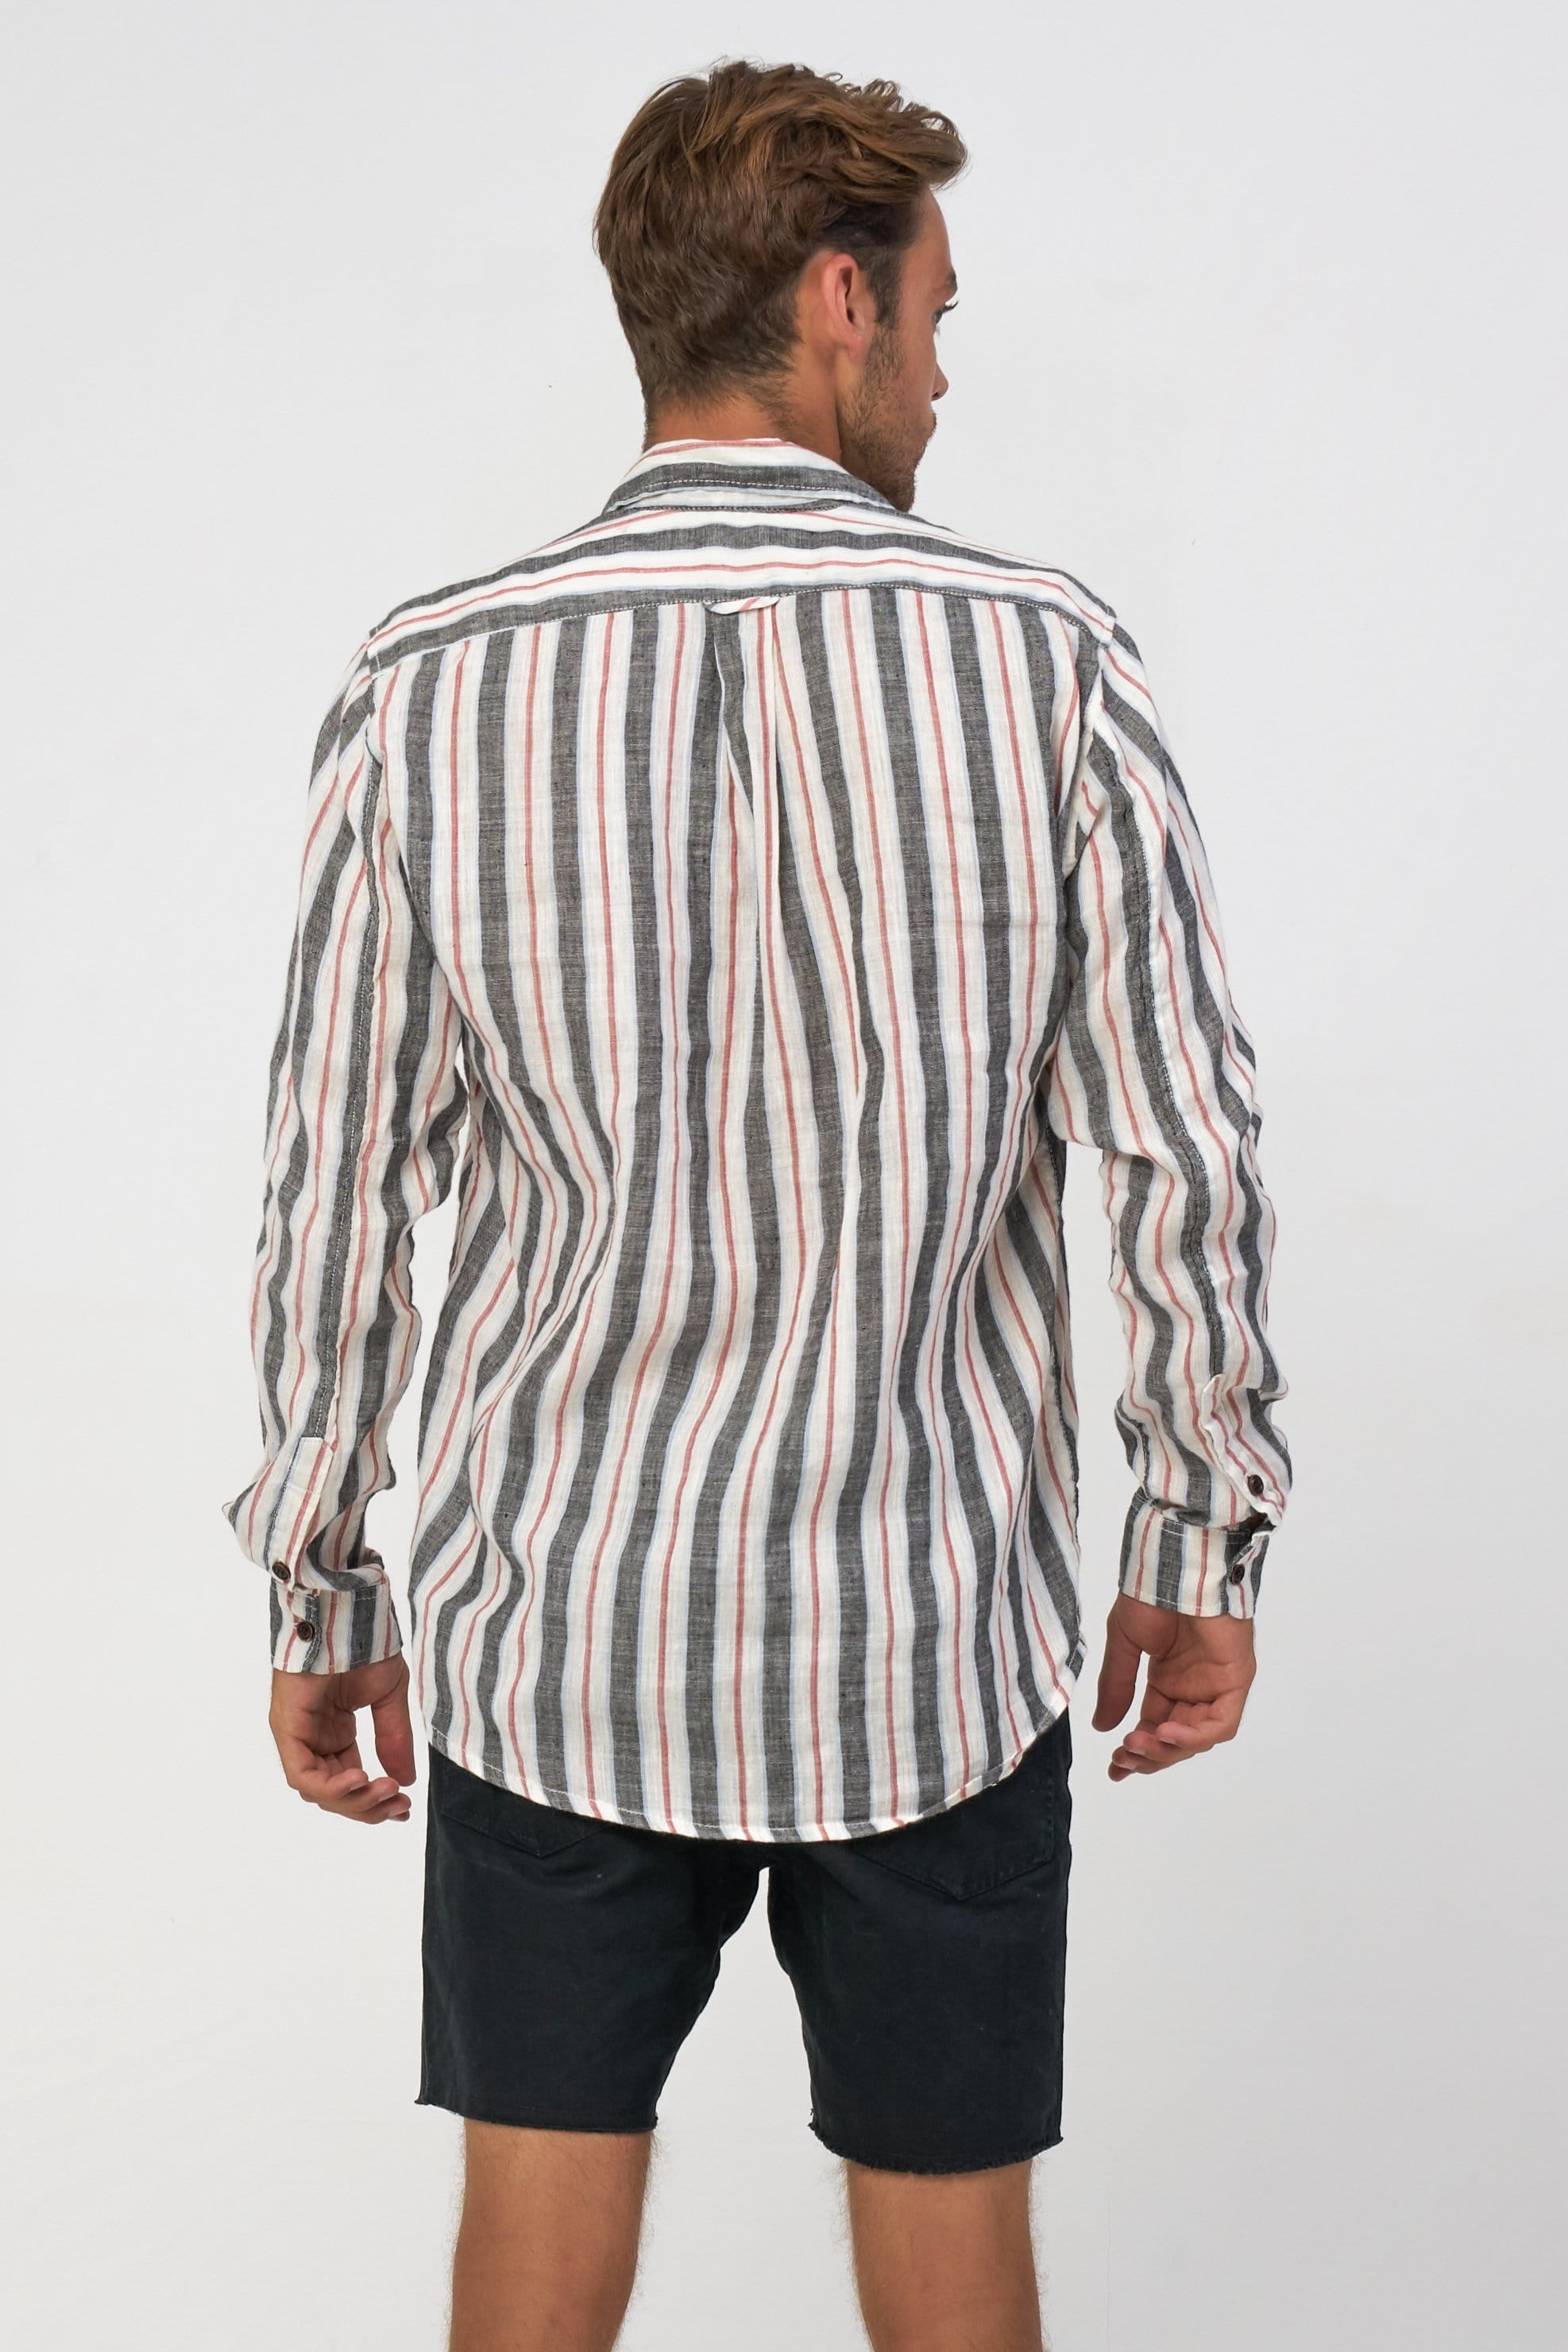 Linen V Stripe Ls - Man Shirt - LOST IN PARADISE